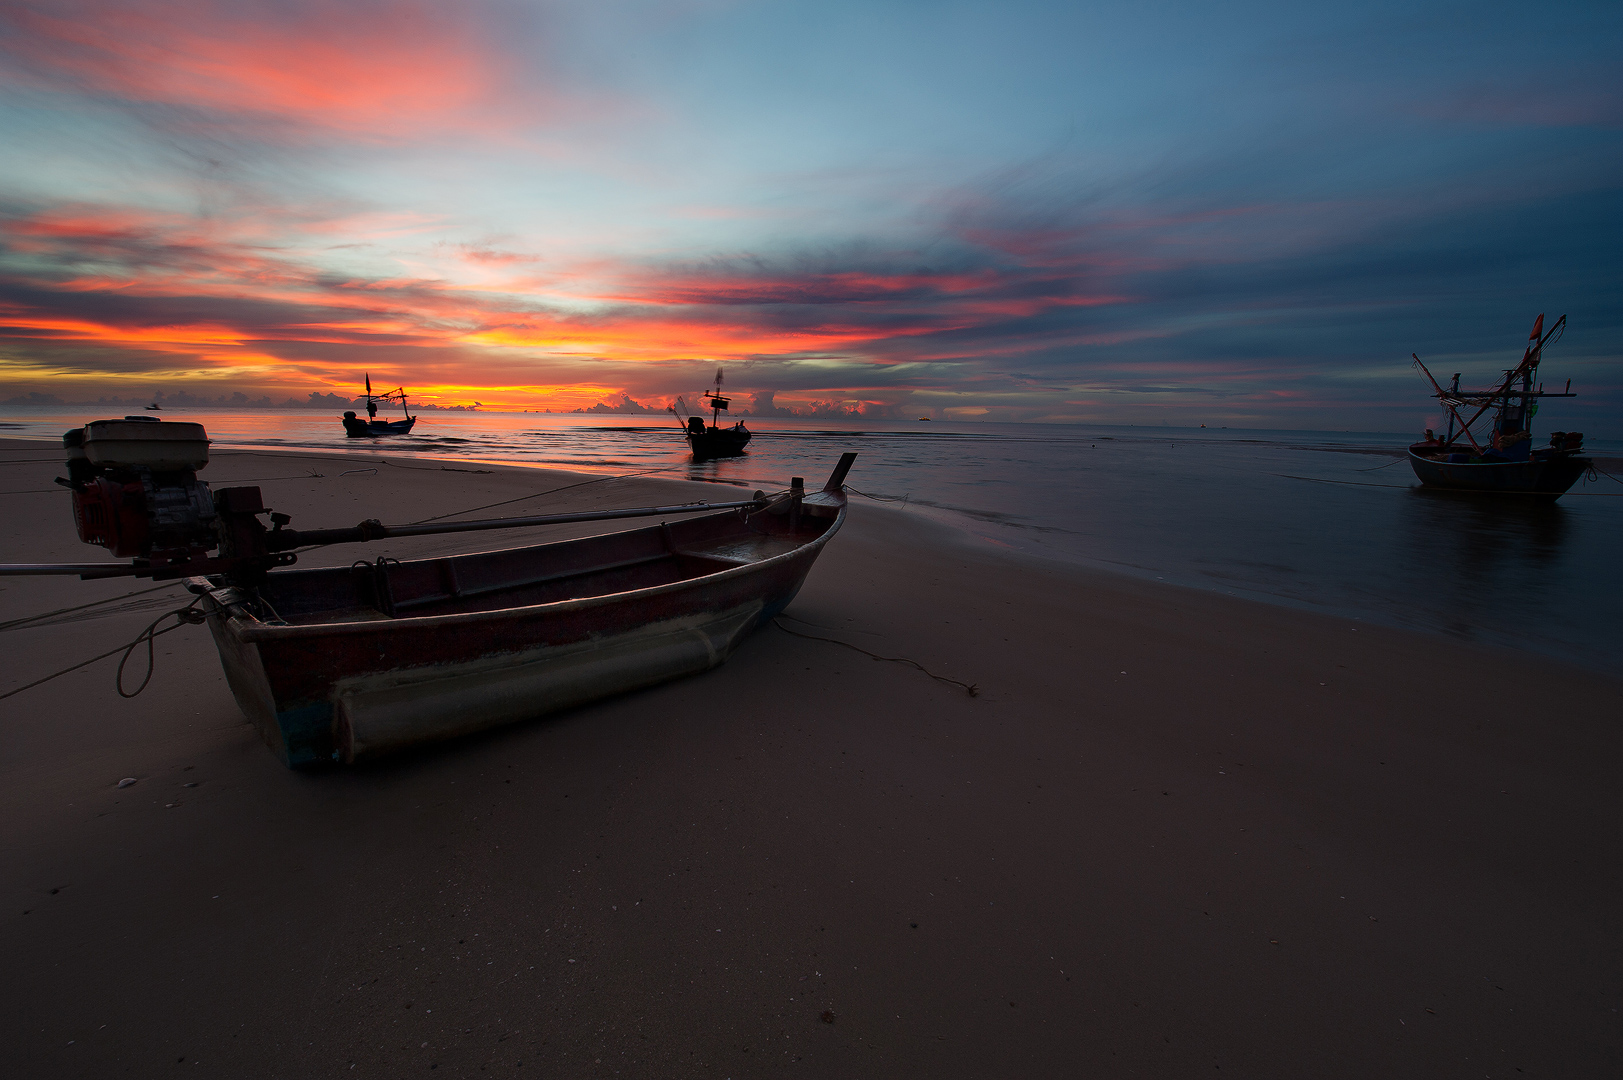 Thailand, Hua Hin, Sunrise, Asia, Indian Ocean, Beach, Bernard Chen, Timescapes, photo